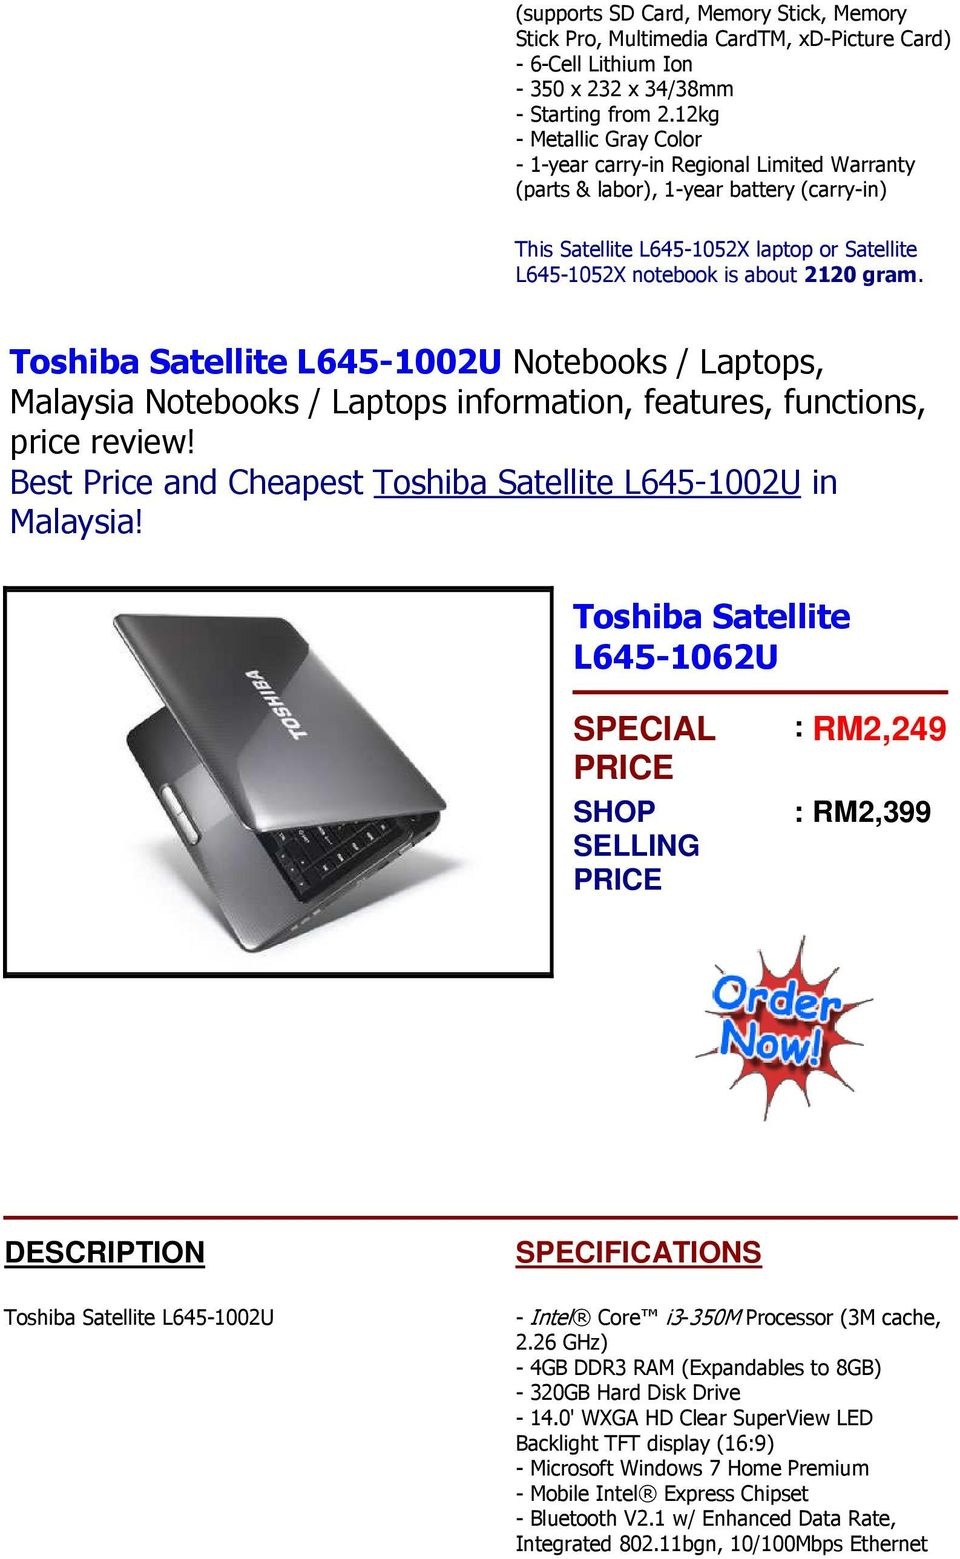 Toshiba Satellite L645-1002U Notebooks / Laptops, Best Price and Cheapest Toshiba Satellite L645-1002U in Toshiba Satellite L645-1062U SPECIAL SHOP SELLING : RM2,249 : RM2,399 Toshiba Satellite